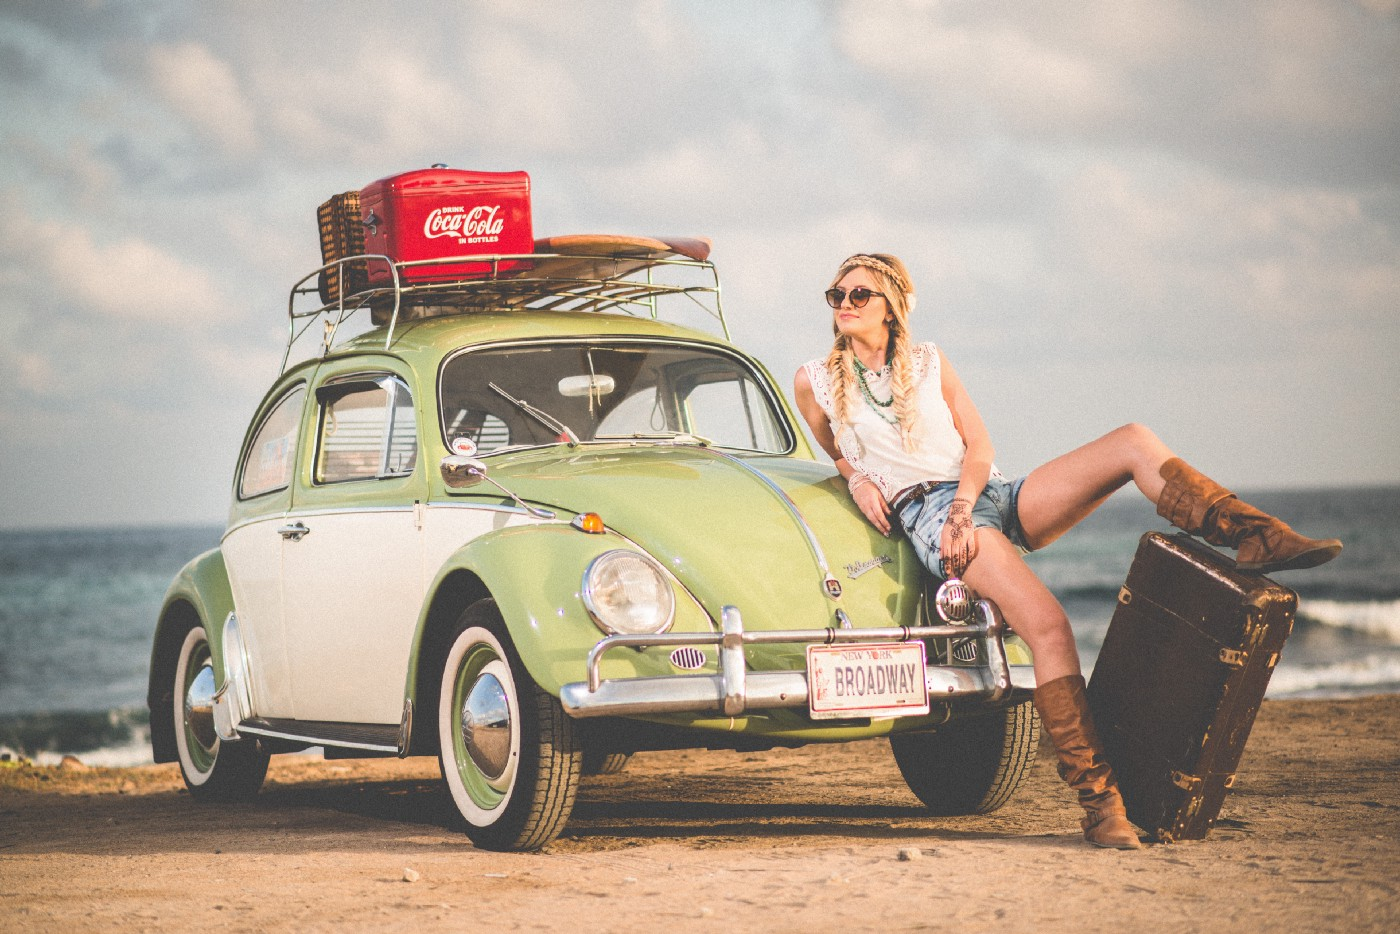 Blonde woman leaning against old car with suitcase on the roof by the sea.